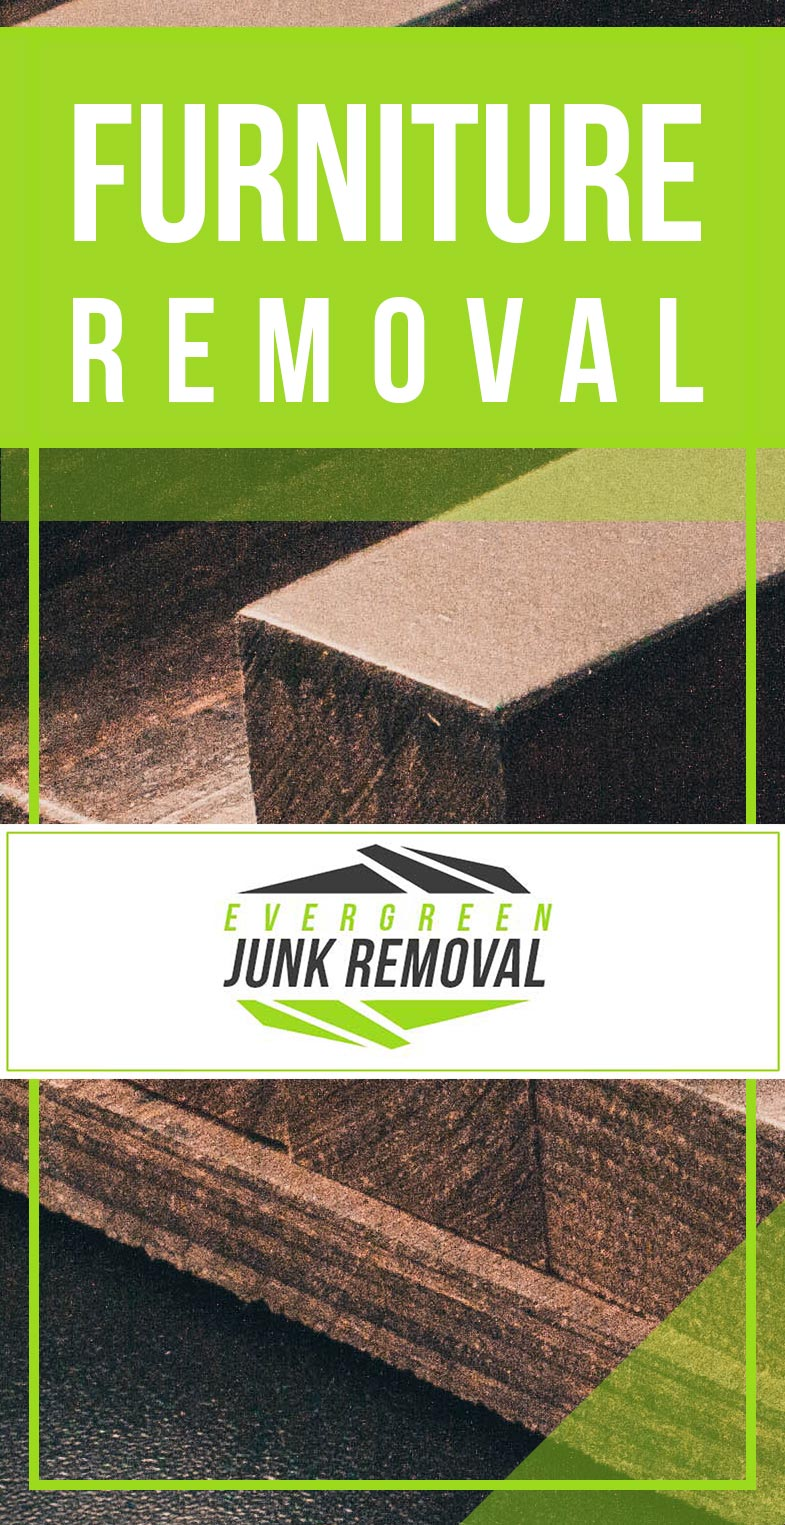 Junk Removal Margate Furniture Removal